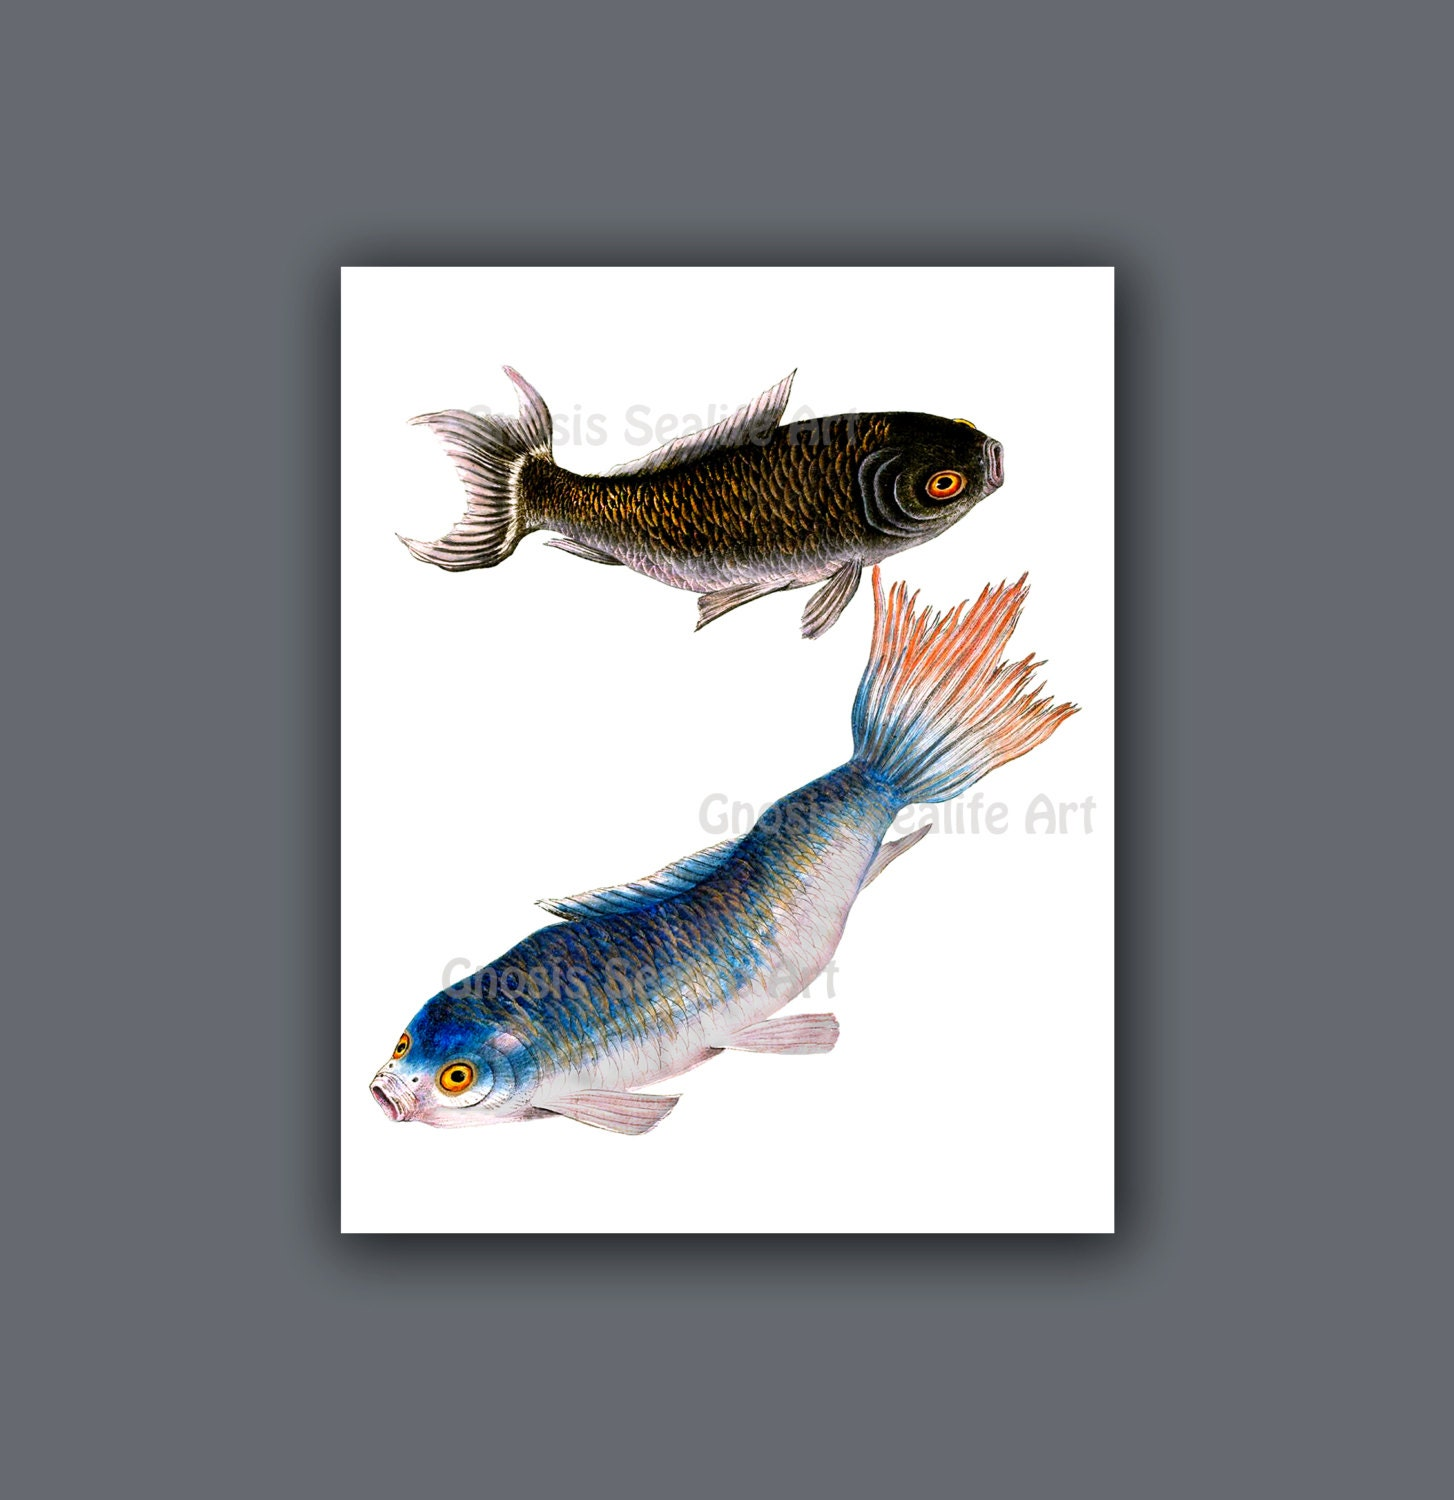 Antique fish art koi fish wall art print 5 symbol for love for Koi carp wall art